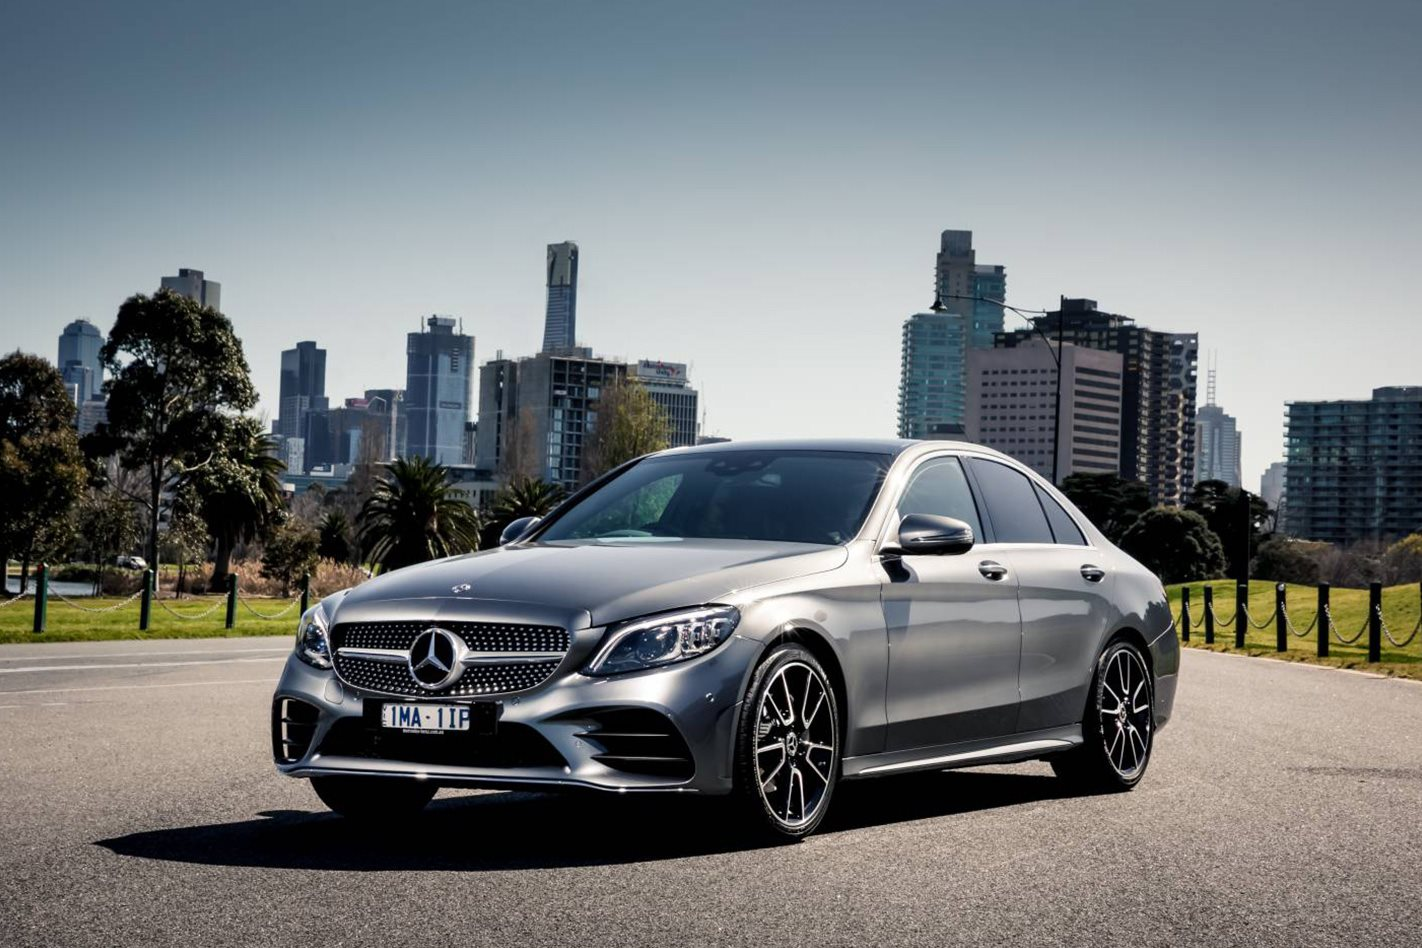 2019 Mercedes C200 review